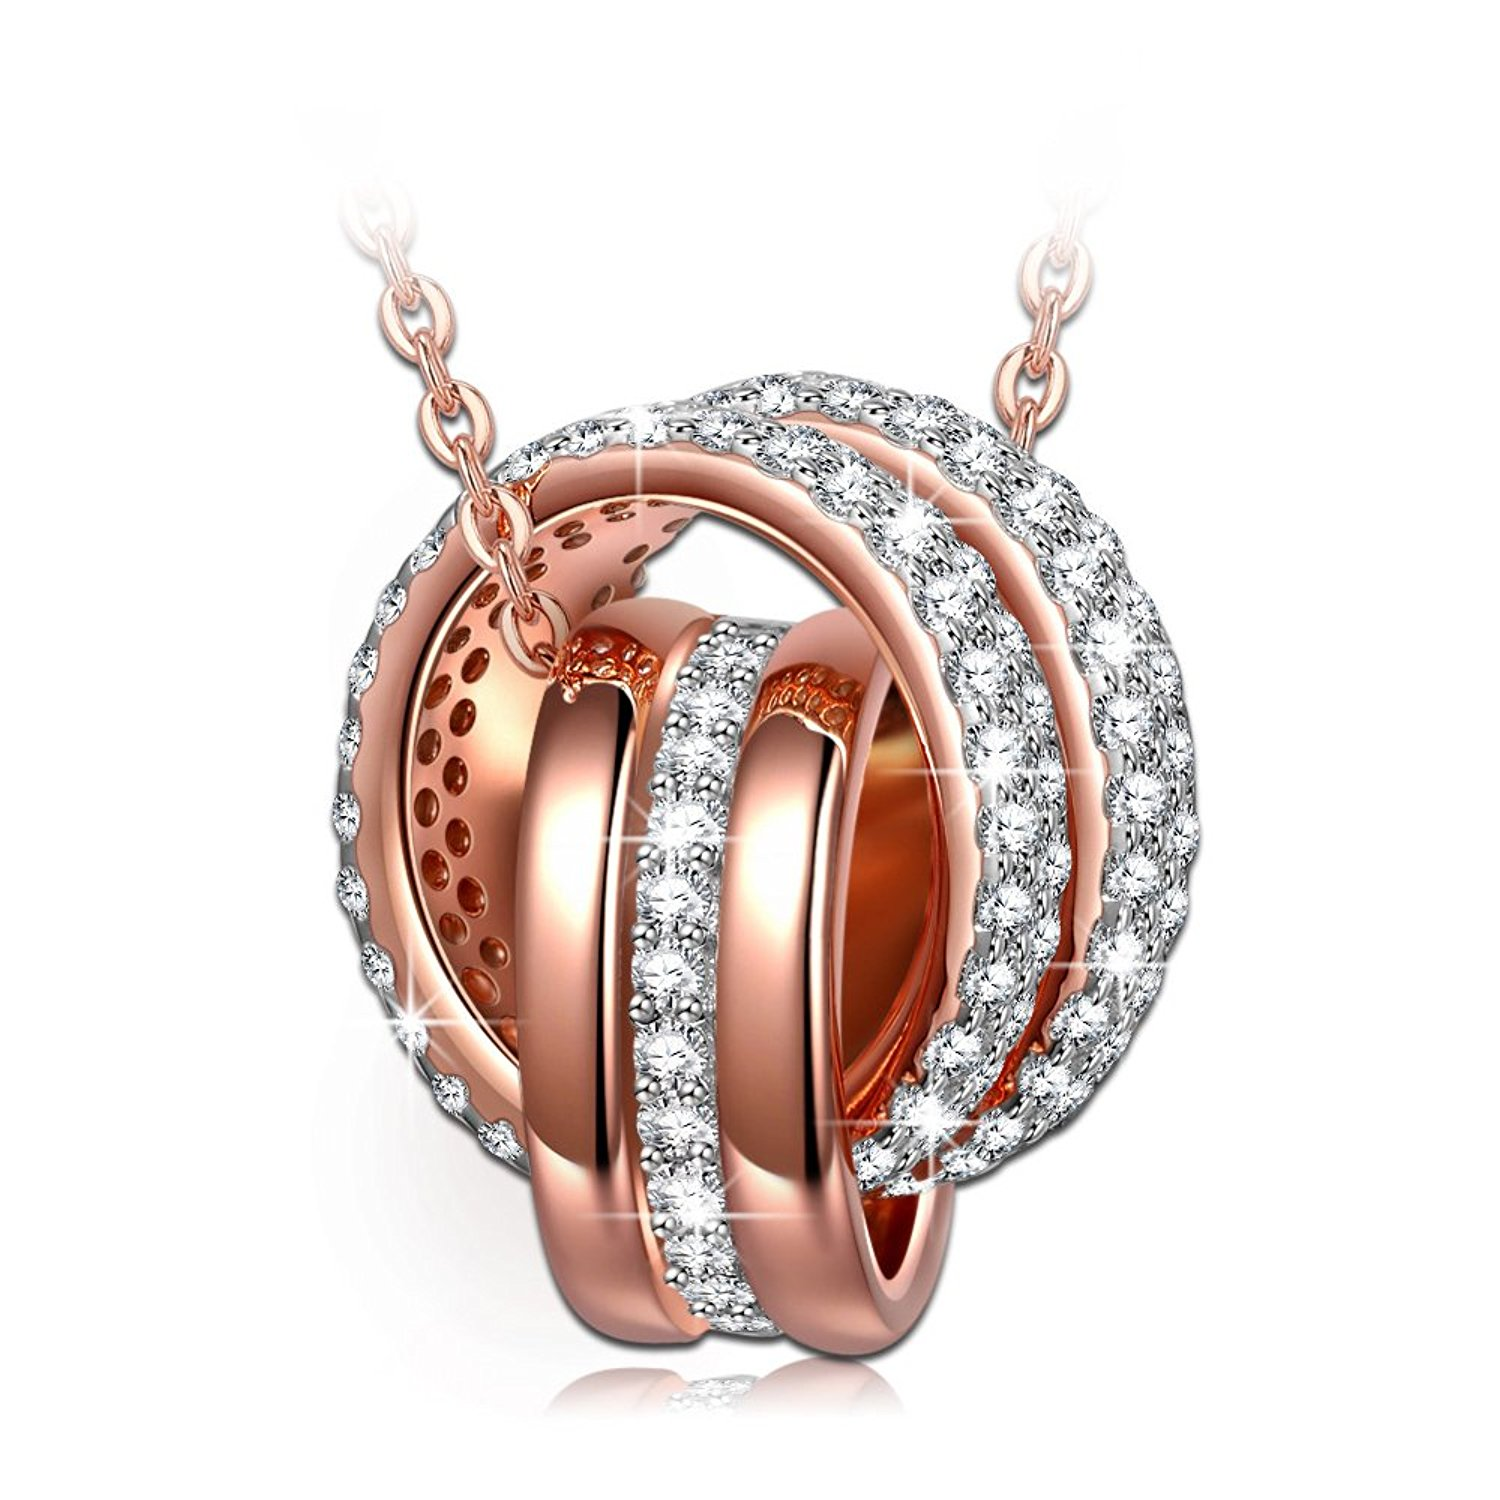 NINASUN 'Always with You' 925 Sterling Silver Rose Gold Dangle Pendant Necklace AAA CZ Jewelry for Women